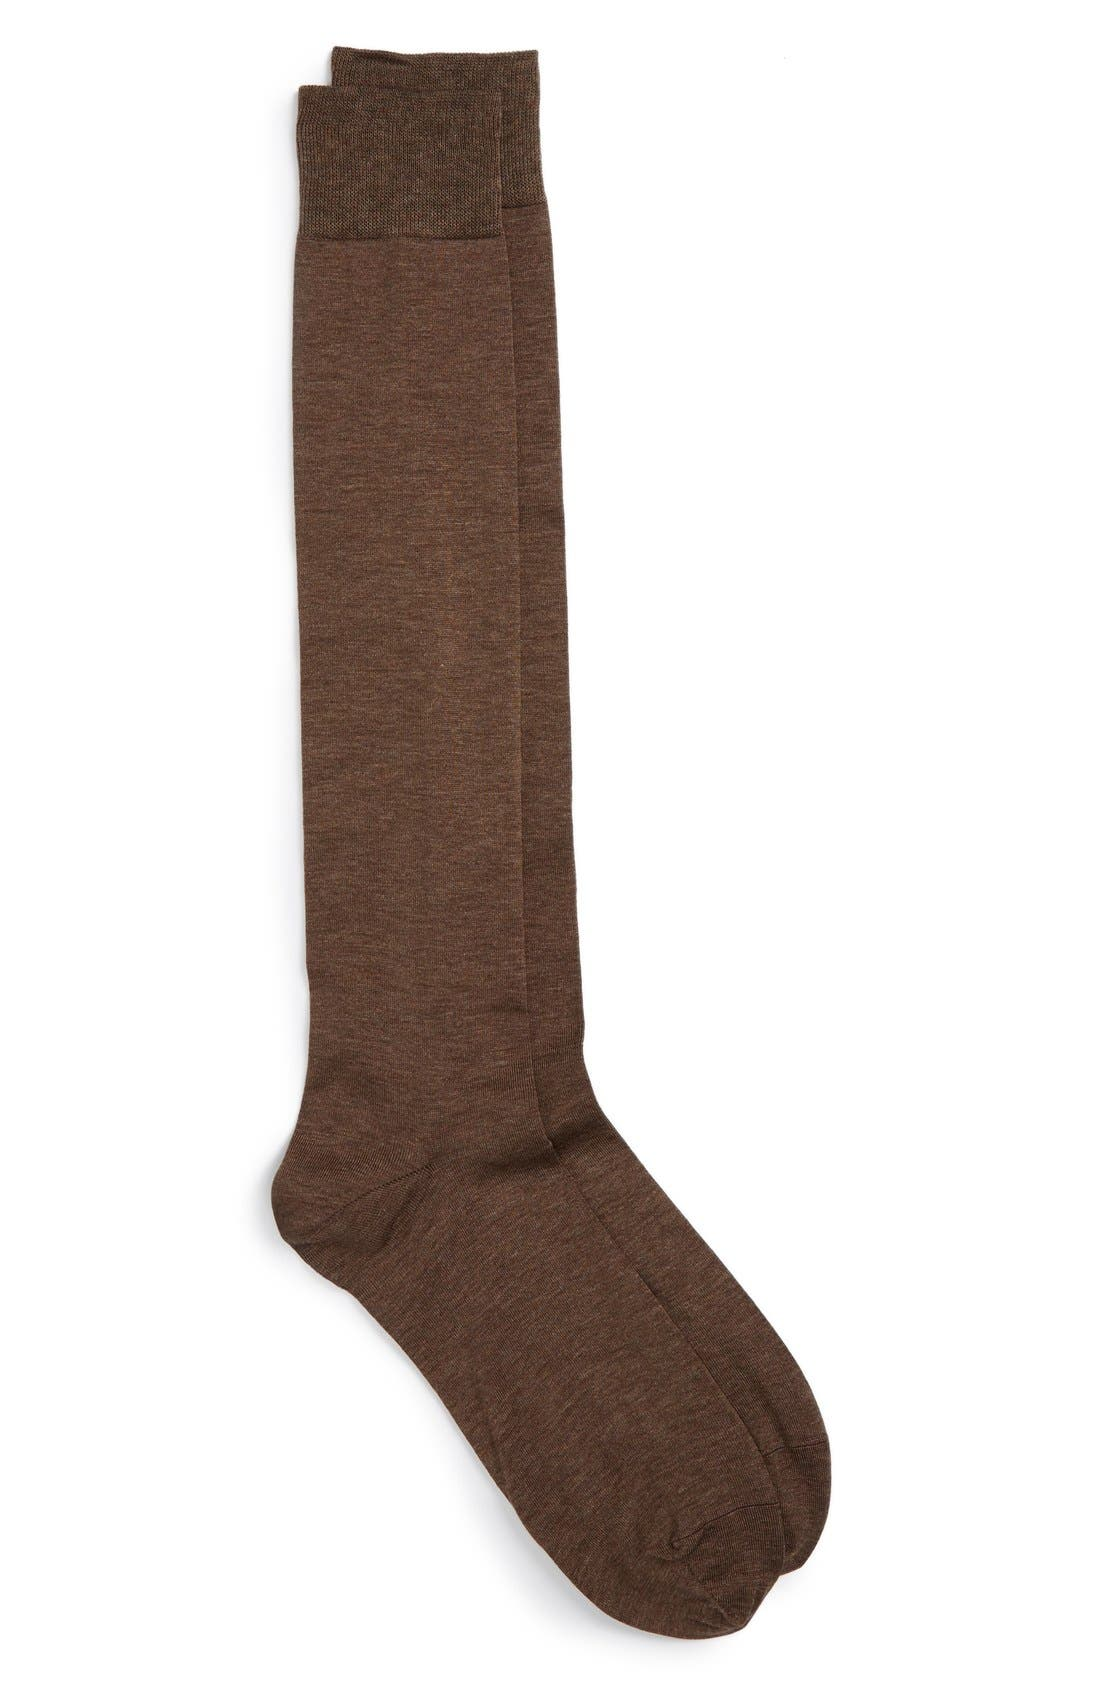 Main Image - John W. Nordstrom® Over the Calf Egyptian Cotton Blend Socks (Men) (3 for $48)